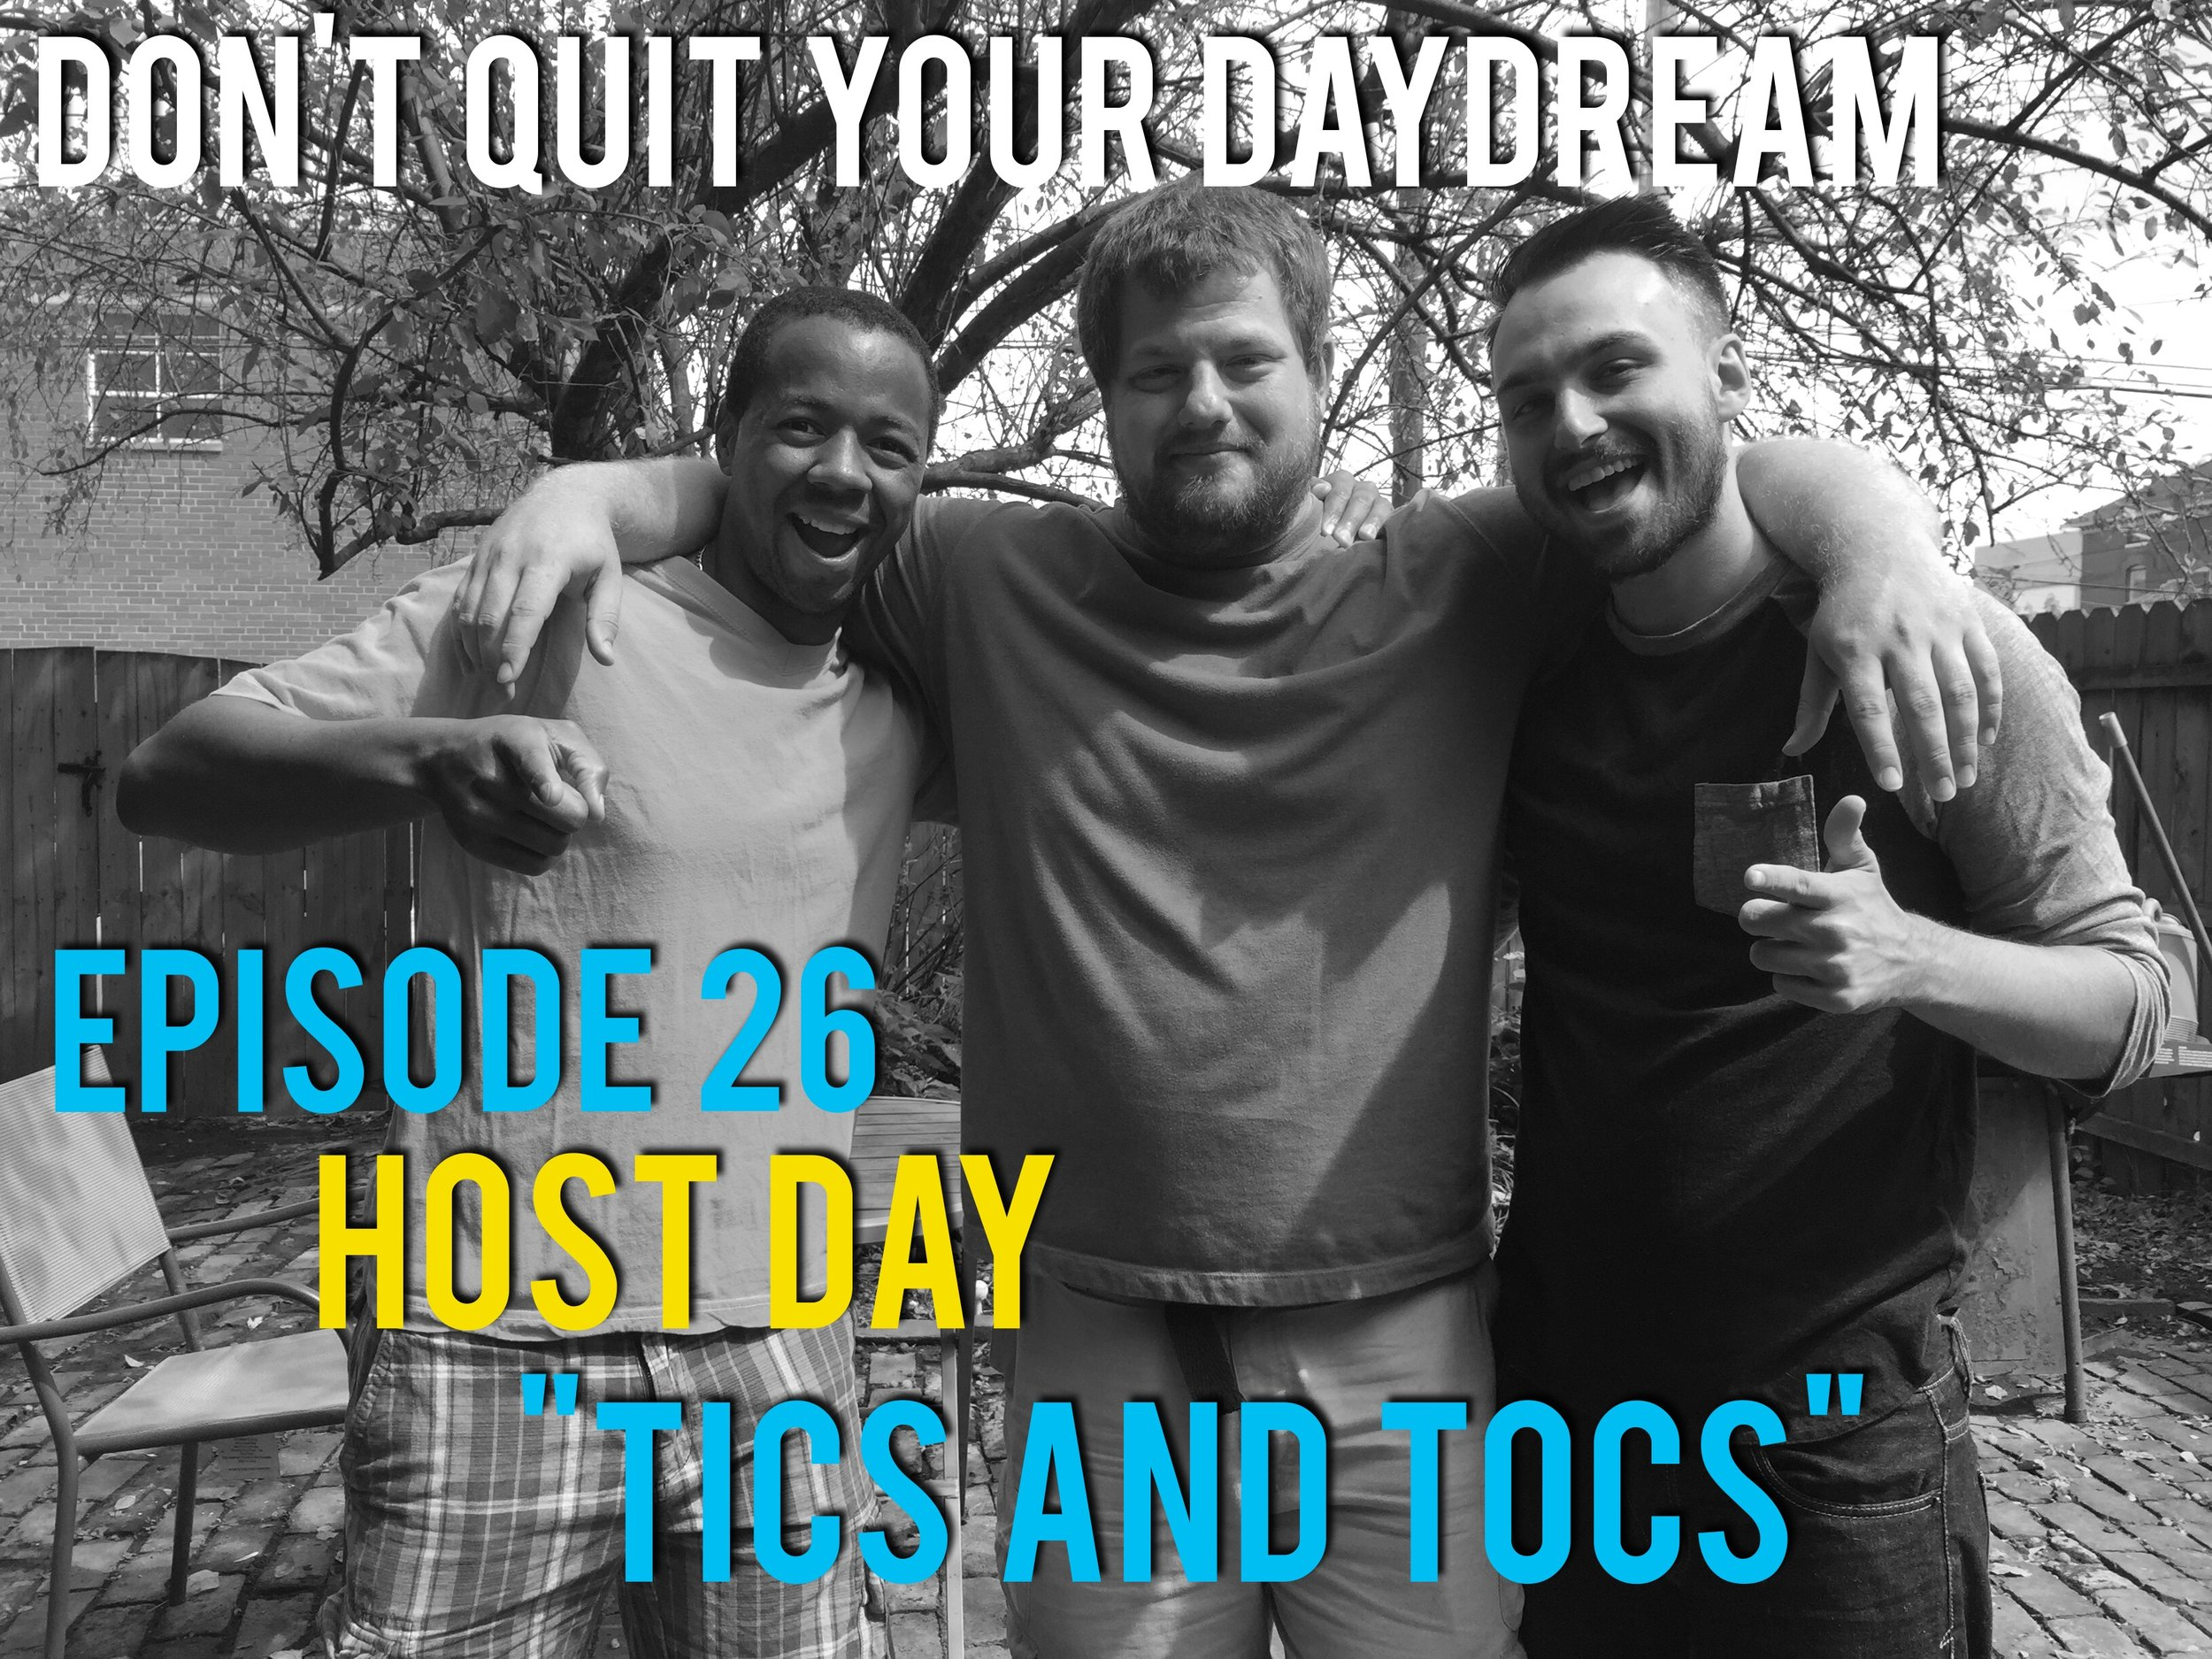 Don't Quit Your Daydream is a podcast for people with hobbies, skills, passions and DREAMS so thank you for being a part of ours. To celebrate the first six months of episodes we decided to pull back the curtain and discuss the shows inception. Get to know hosts Farrin, Drew and Nathan better while they ask each other Good Cop and Bad Cop Questions.  Featured music this week is from Farrin and Nathan's former band Bravo Bravo. Send us an email if you would like to download it for free! Thanks once again and make sure to reach out if you'd like to talk about something you love.  Dqydpodcast@gmail.com